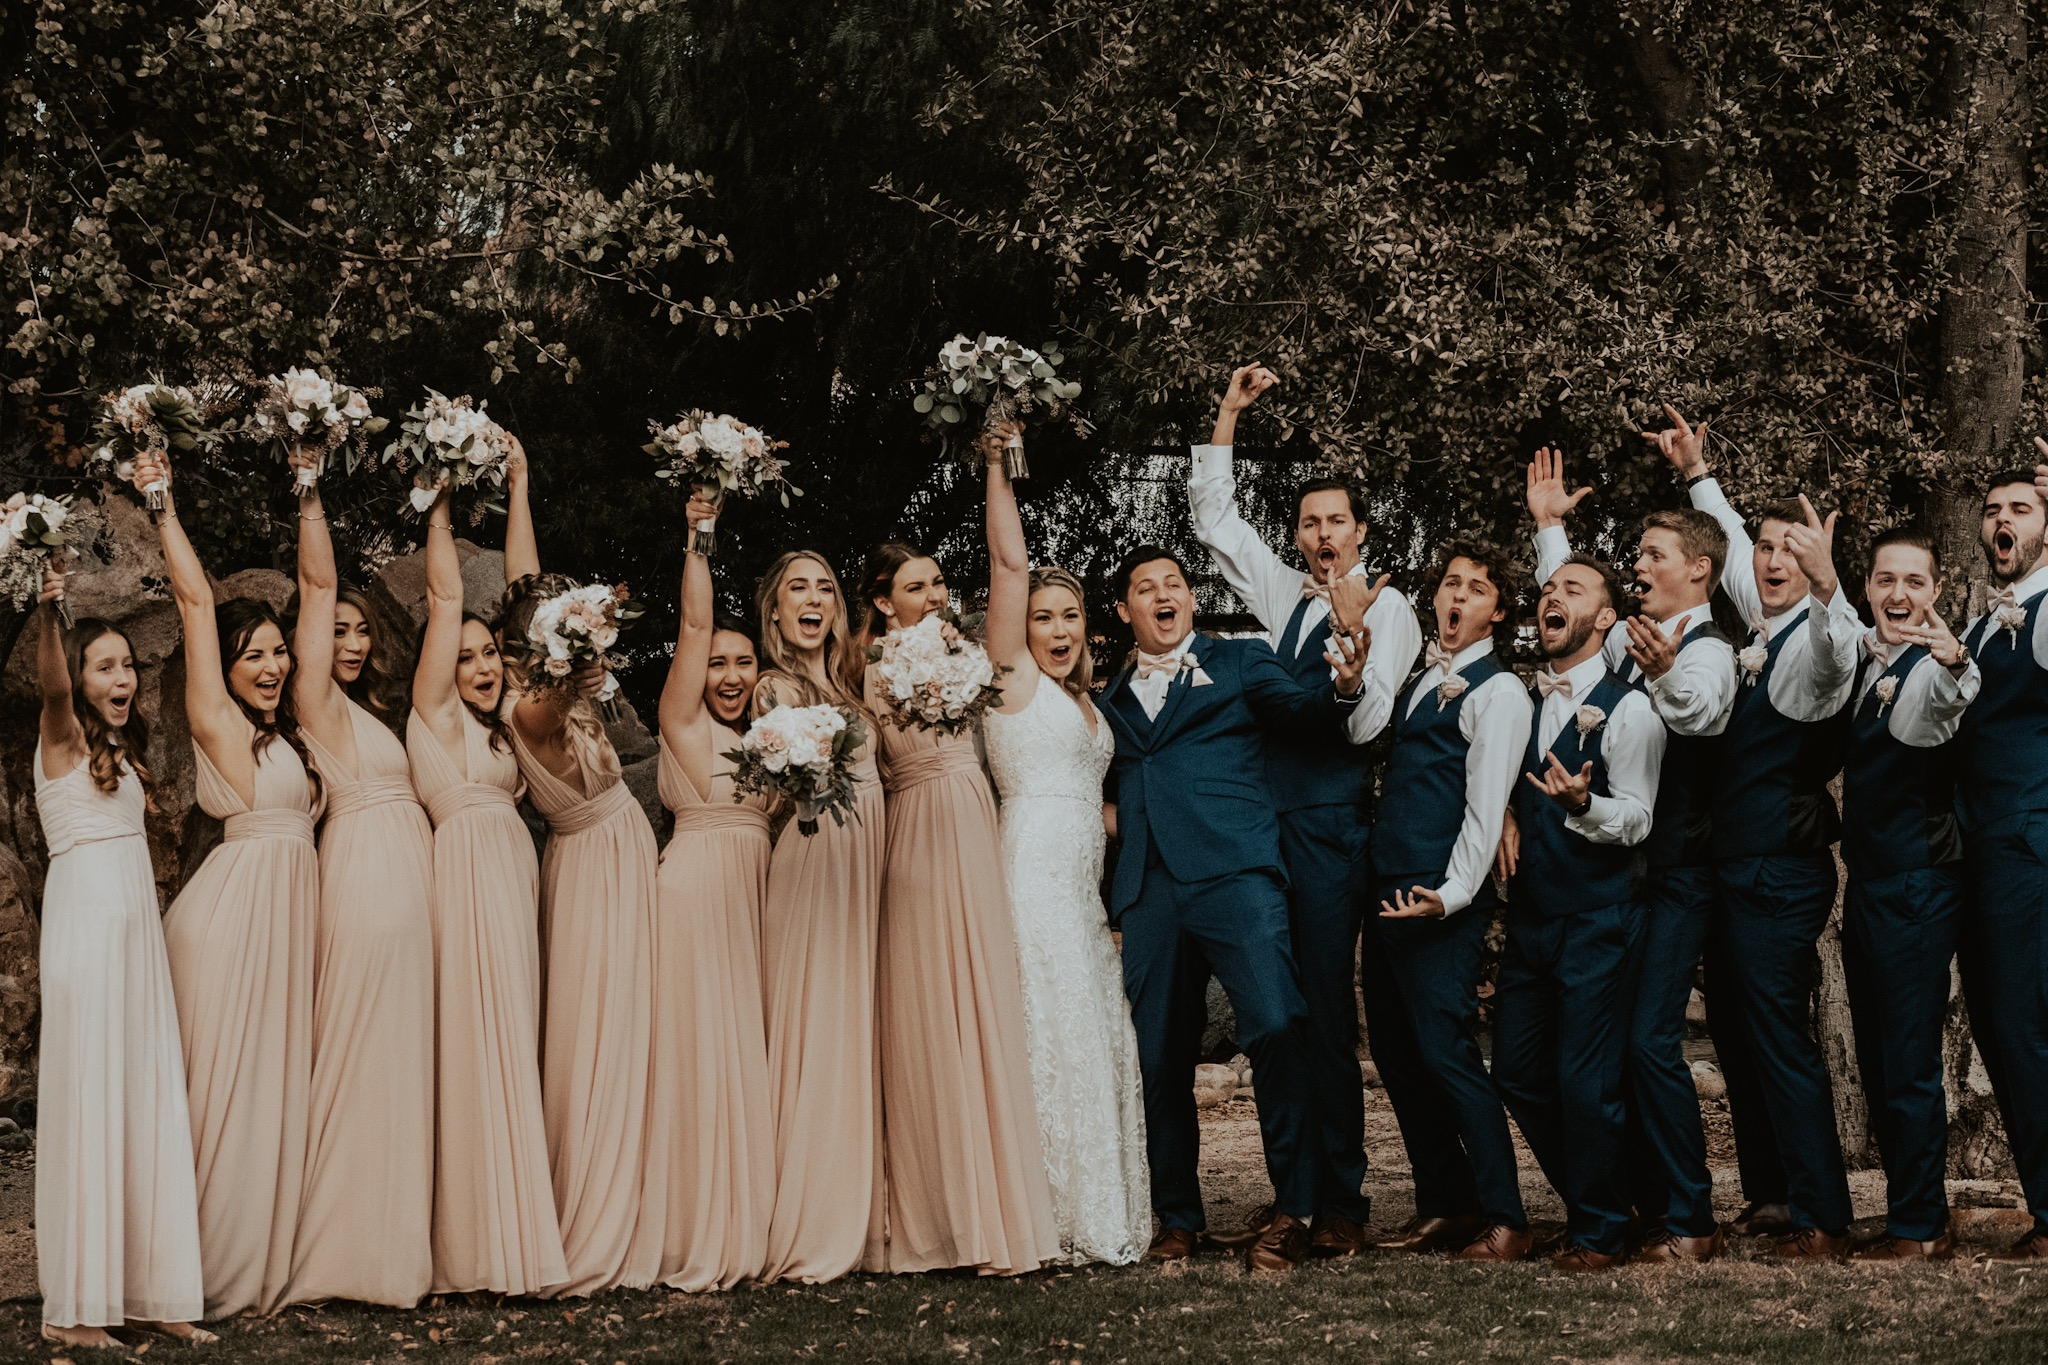 weddings and elopements - heartfelt moments. beautiful blooms. lacey dressesI want to document all the big momentsthe little detailsand the sweet in-betweensyour day will already be magiclets make it last